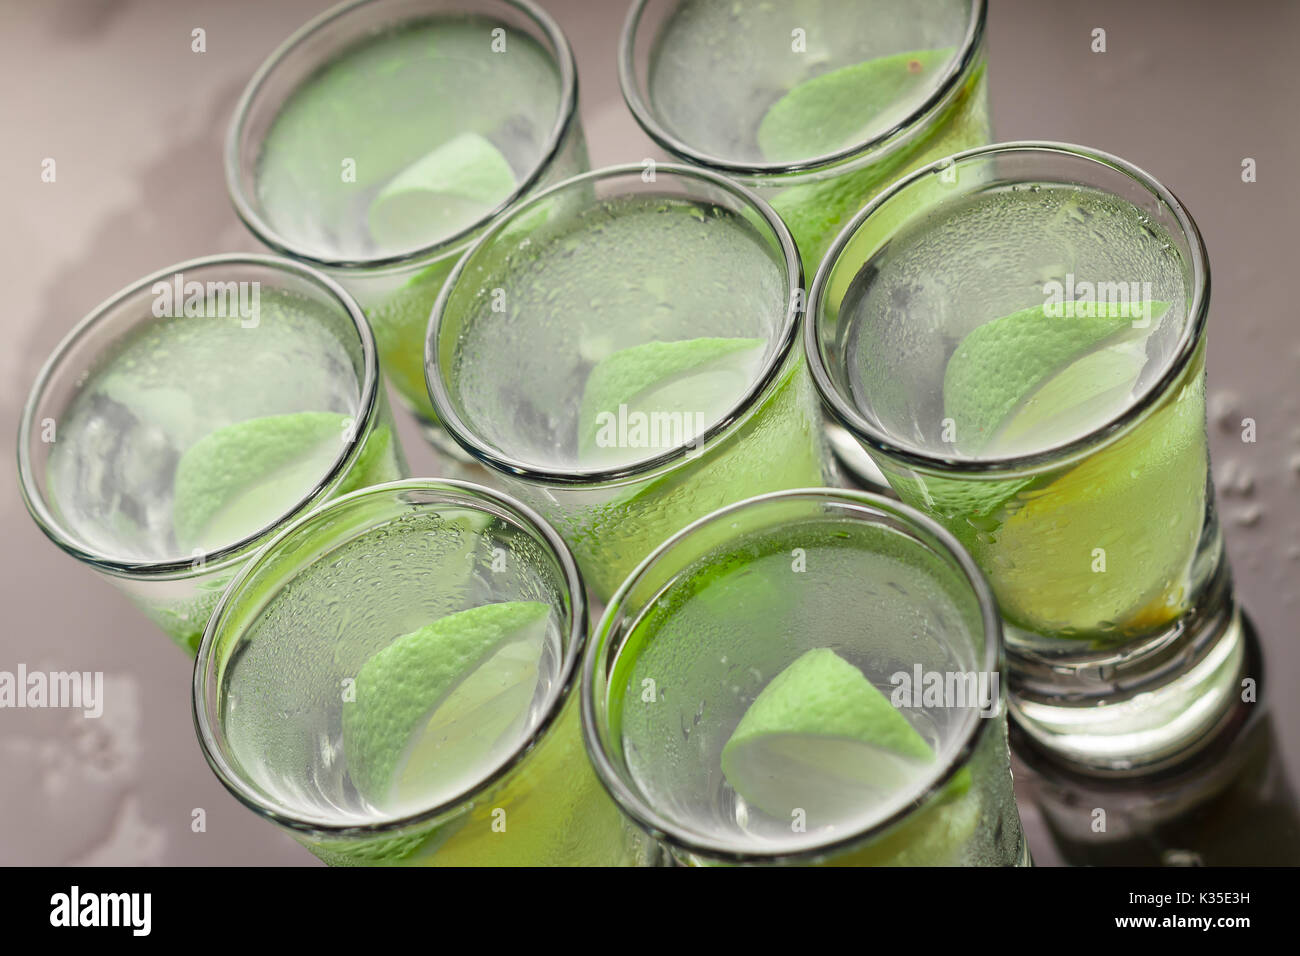 Alcohol cocktail with lime - Stock Image